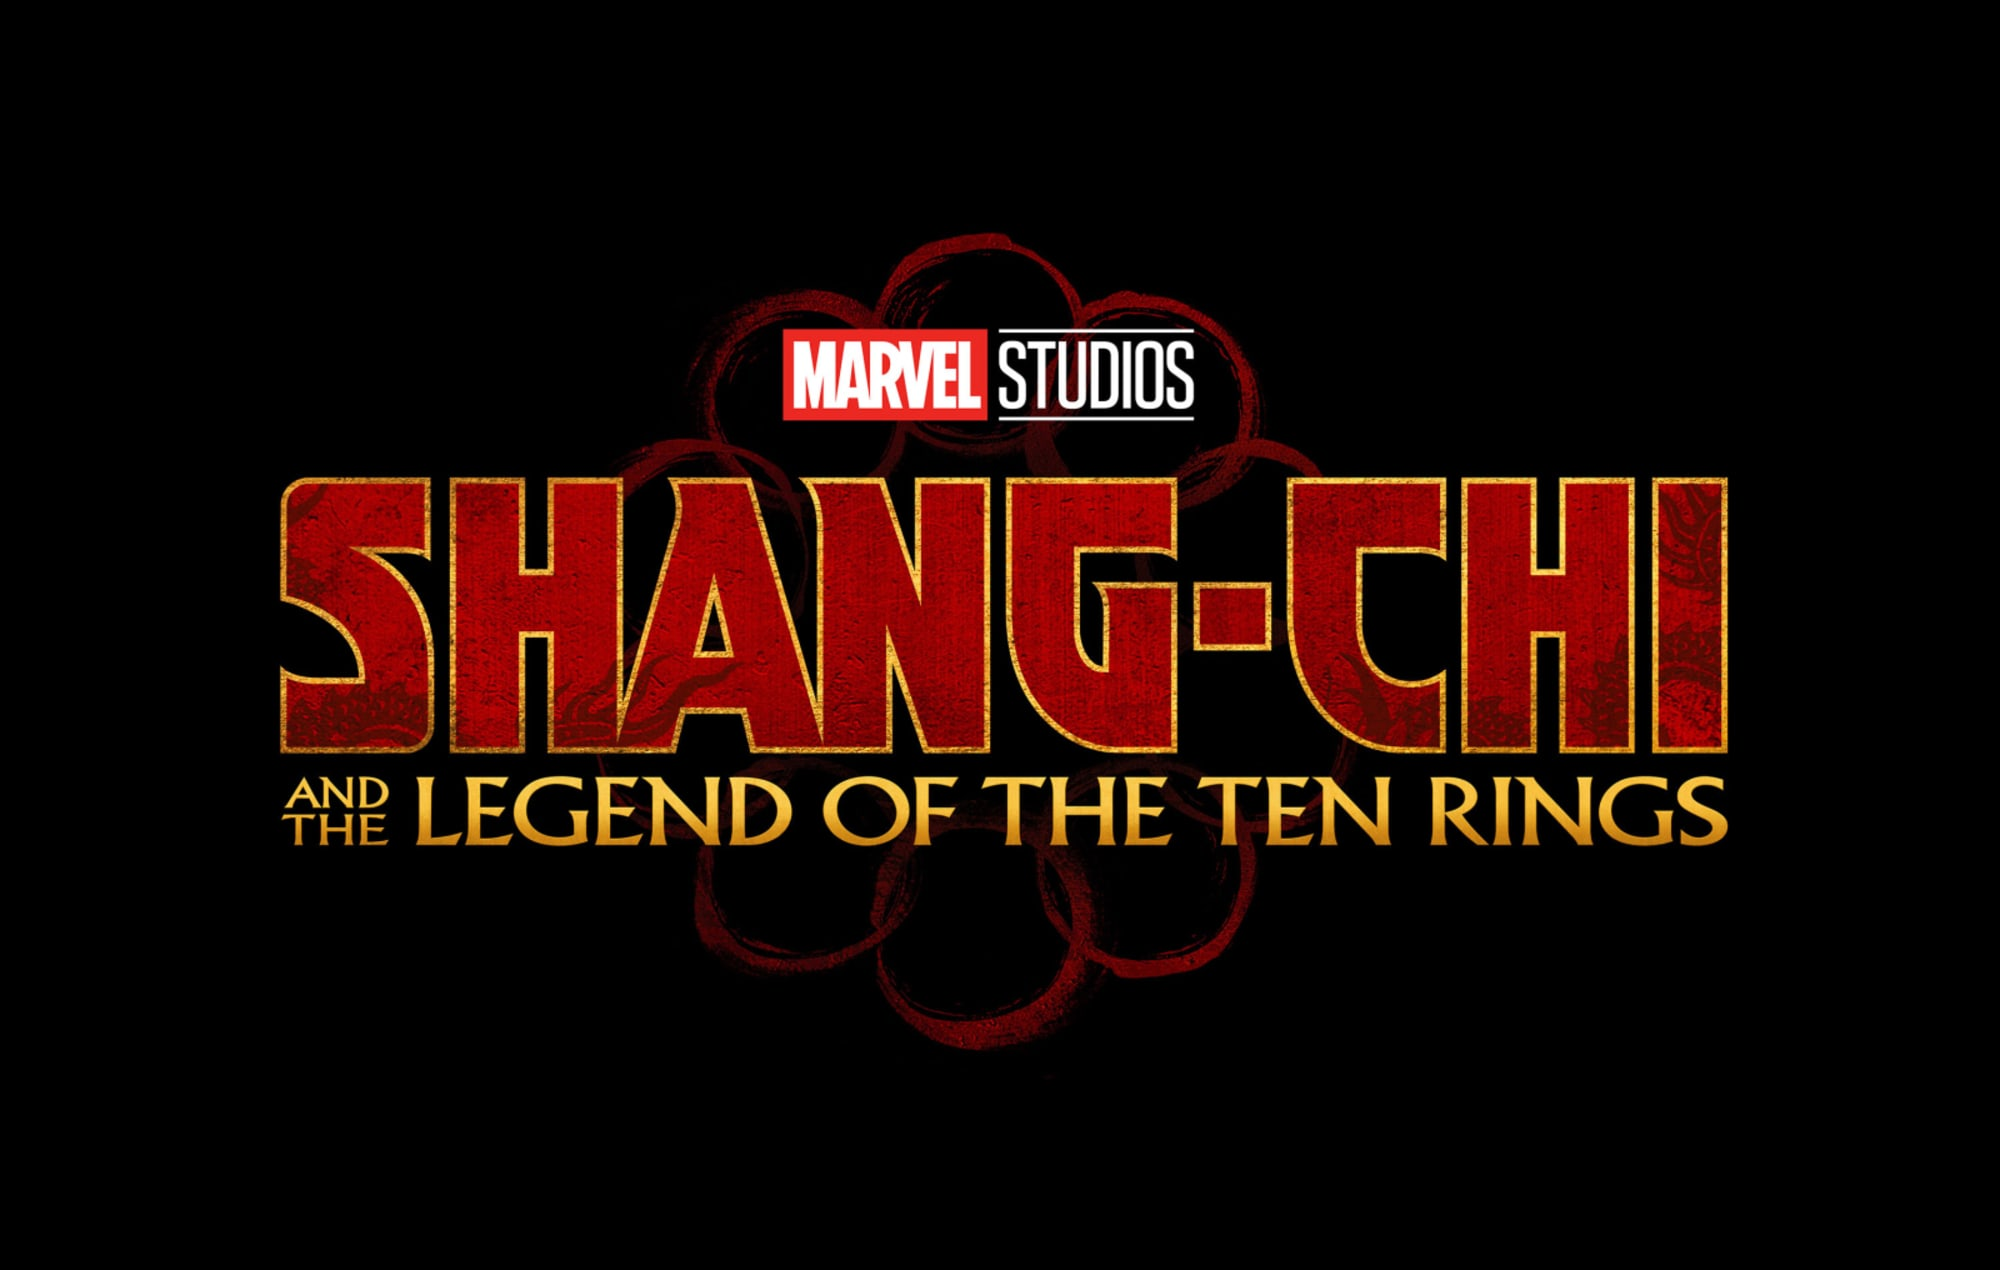 When is Shang-Chi streaming free on Disney+?